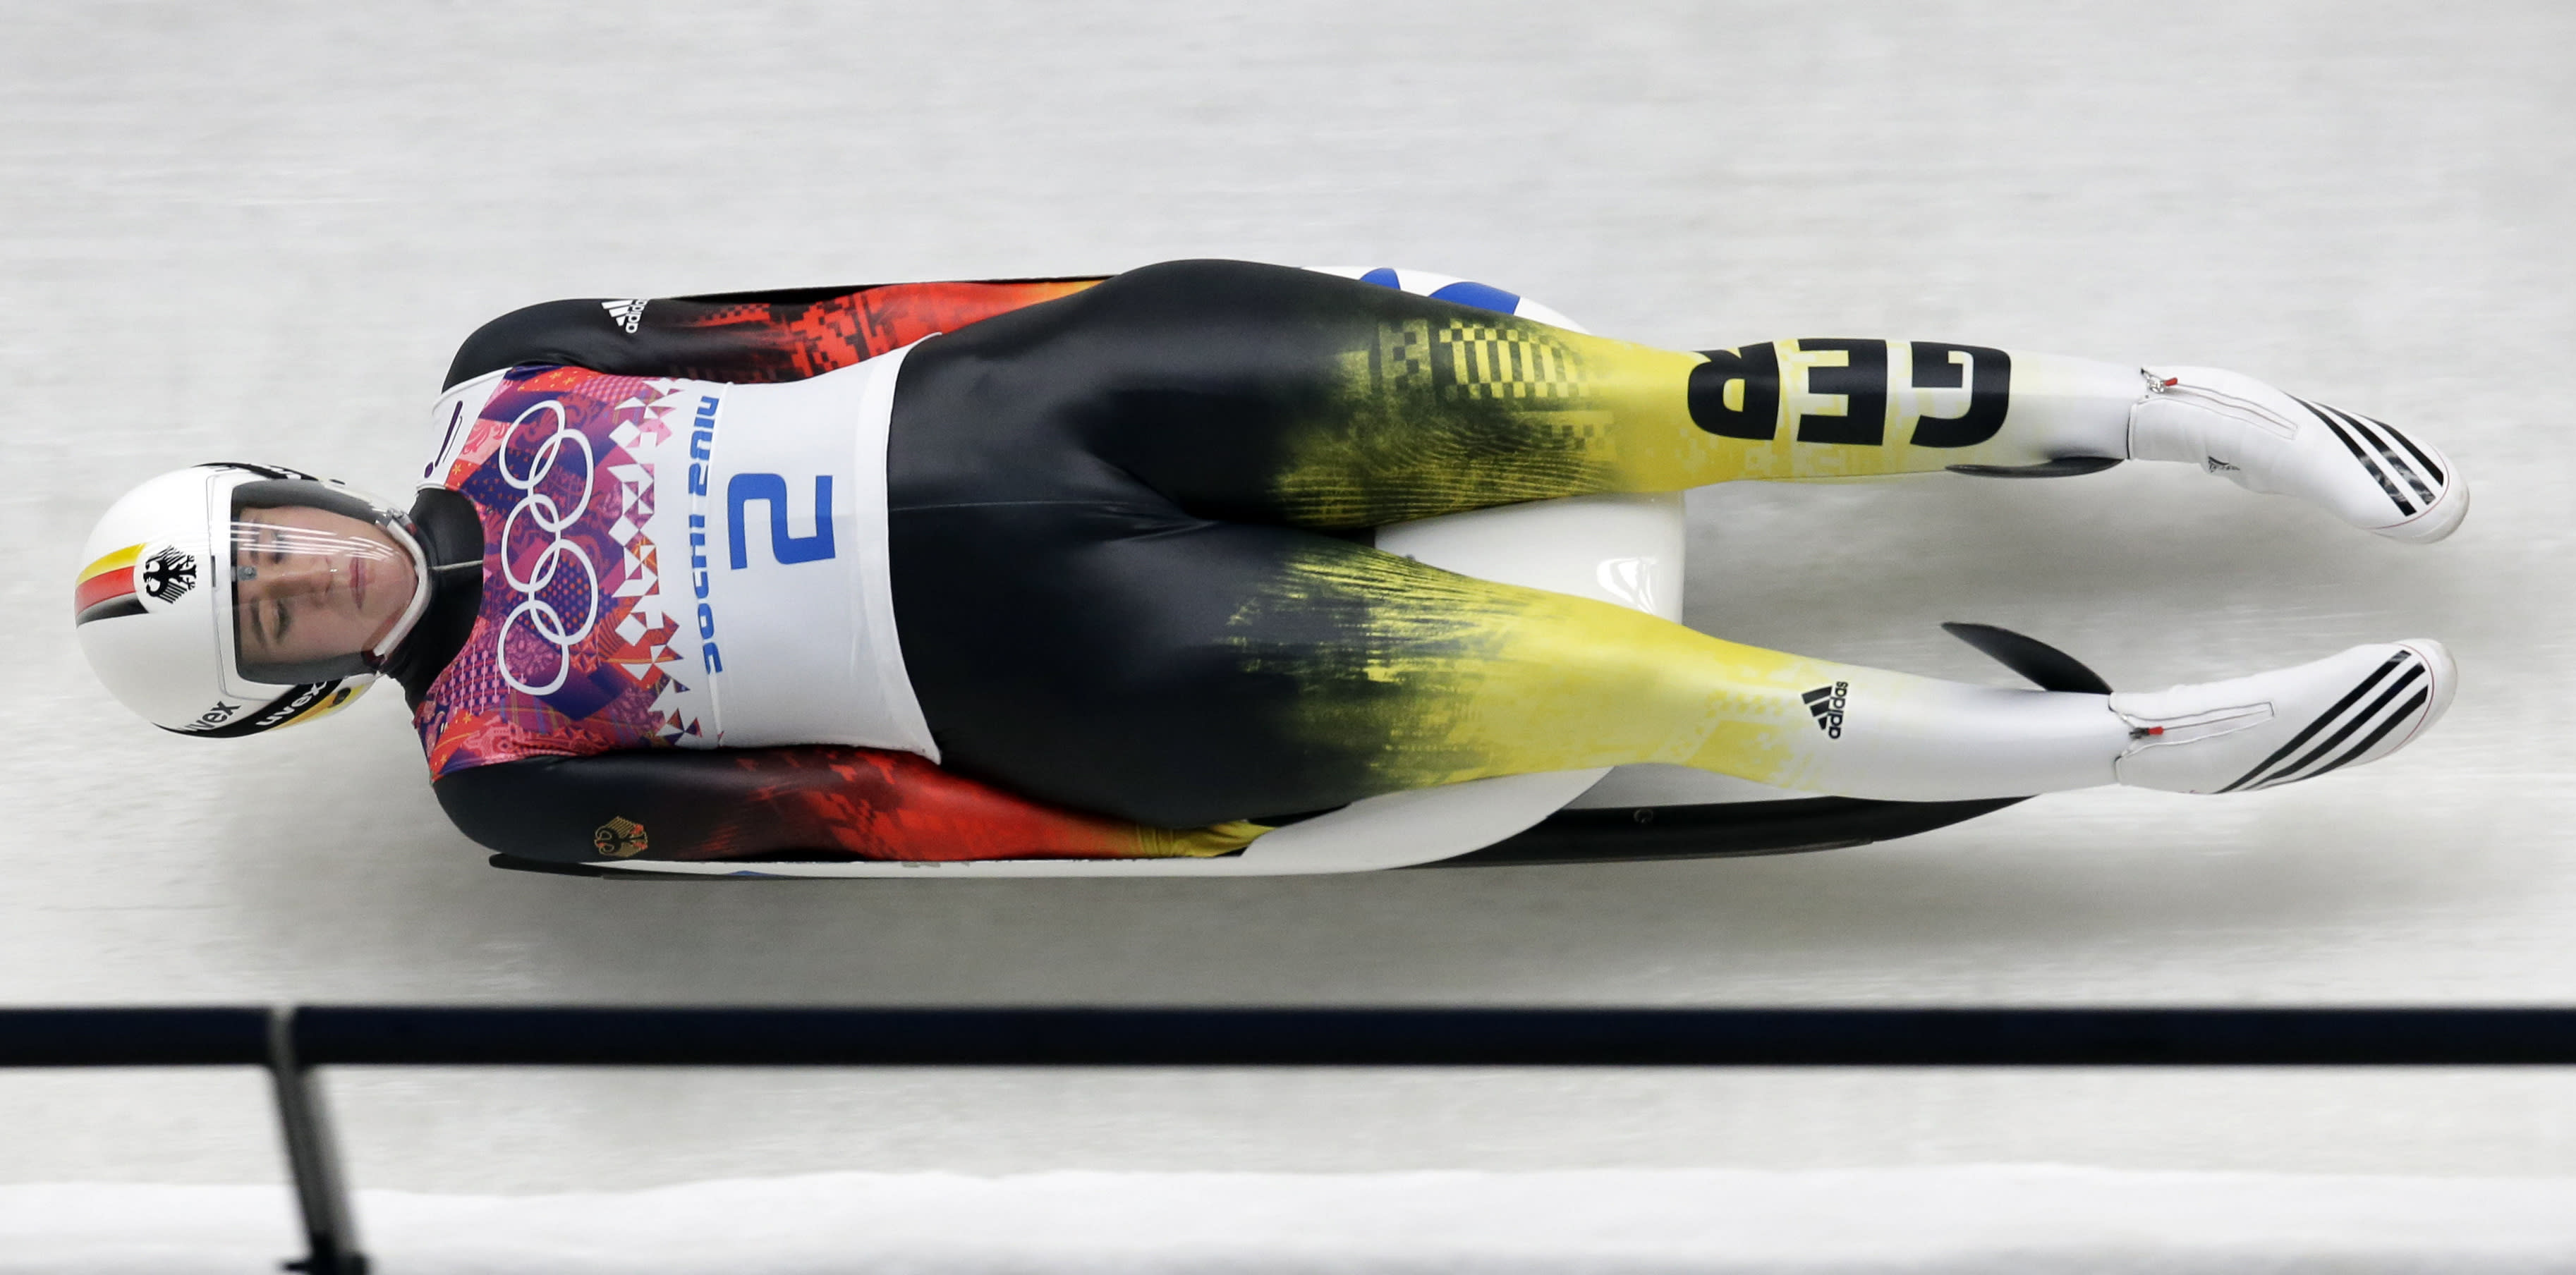 single women in hamlin Hamlin sixth in olympic farewell published feb 13, 2018 at 4:10pm pyeongchang, south korea (ap) — remsen's erin hamlin missed out on a medal today in the women's singles luge at the pyeongchang winter olympics, as germany went 1.